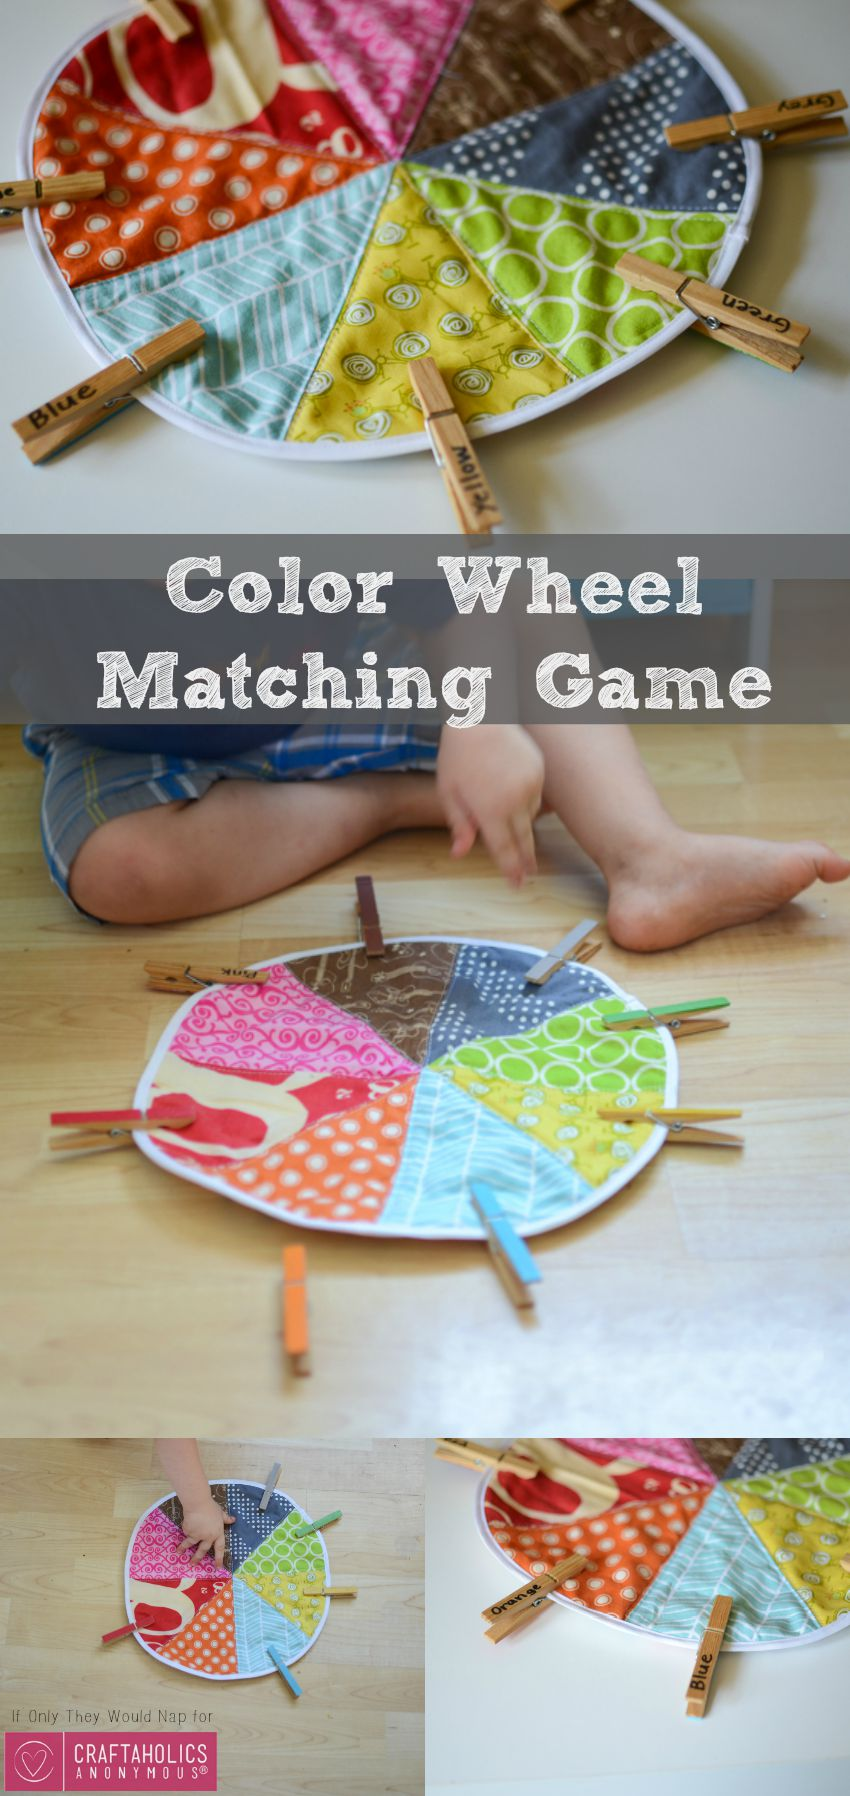 DIY Tutorial for Cute Color matching Game for Preschoolers and Toddlers on www.craftaholicsanonymous.net